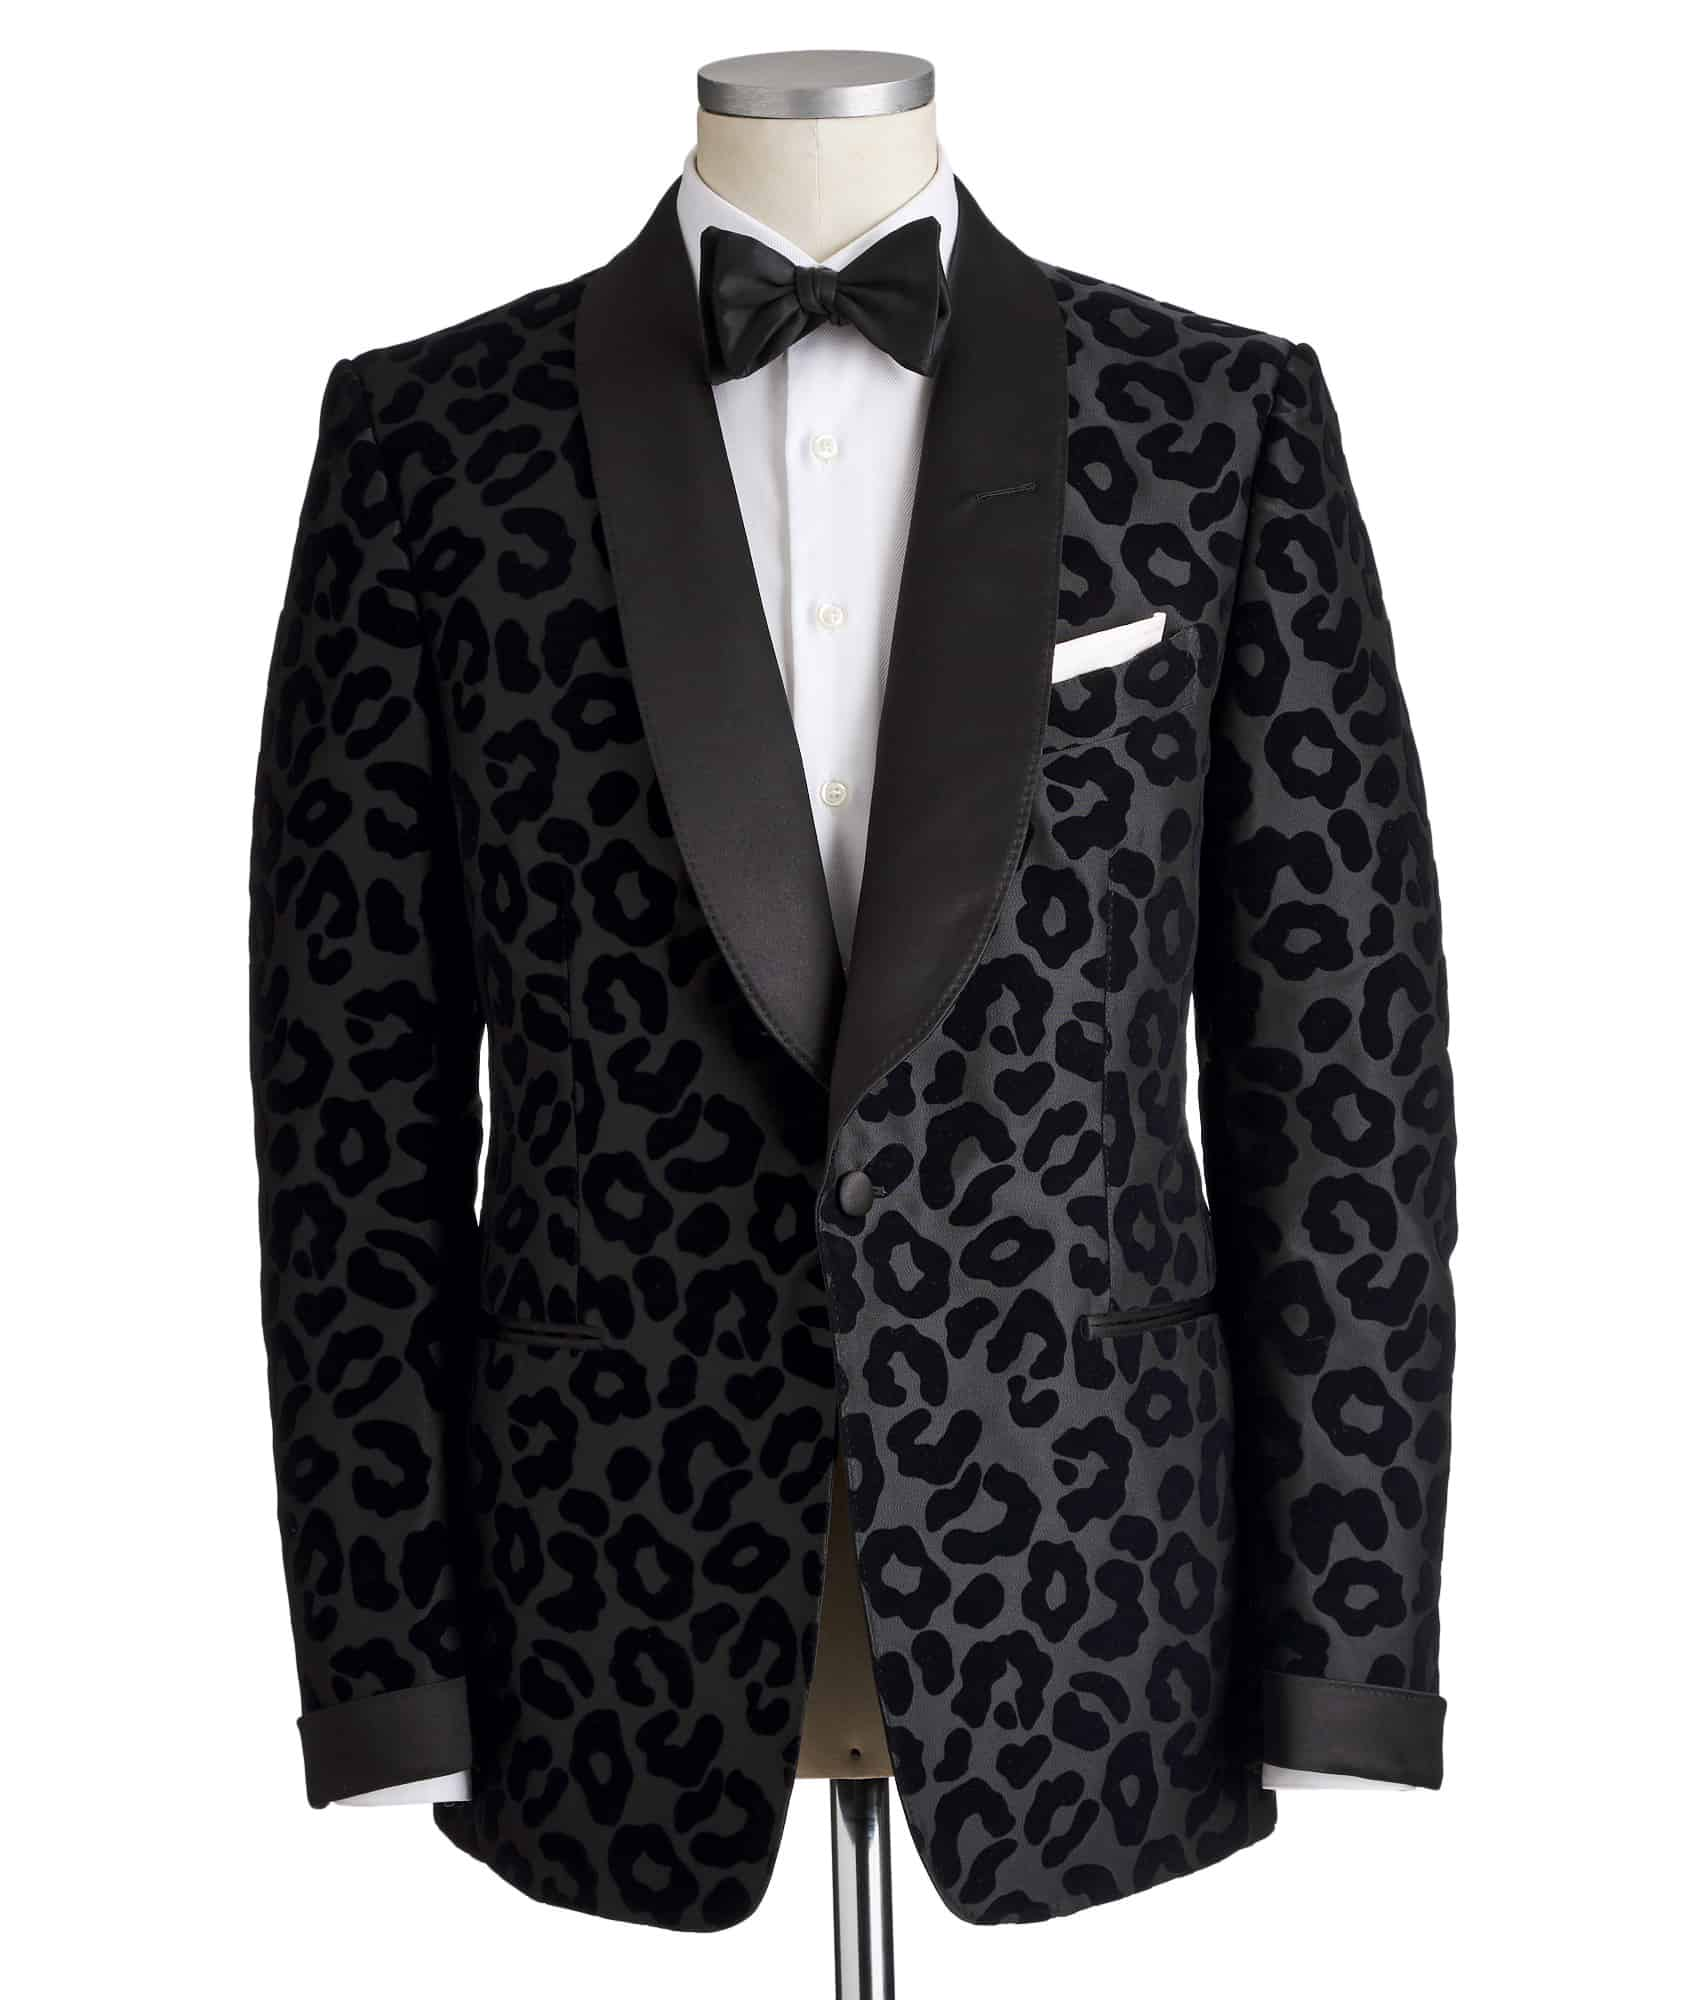 TOM FORD Shelton Leopard-Printed Cocktail Jacket